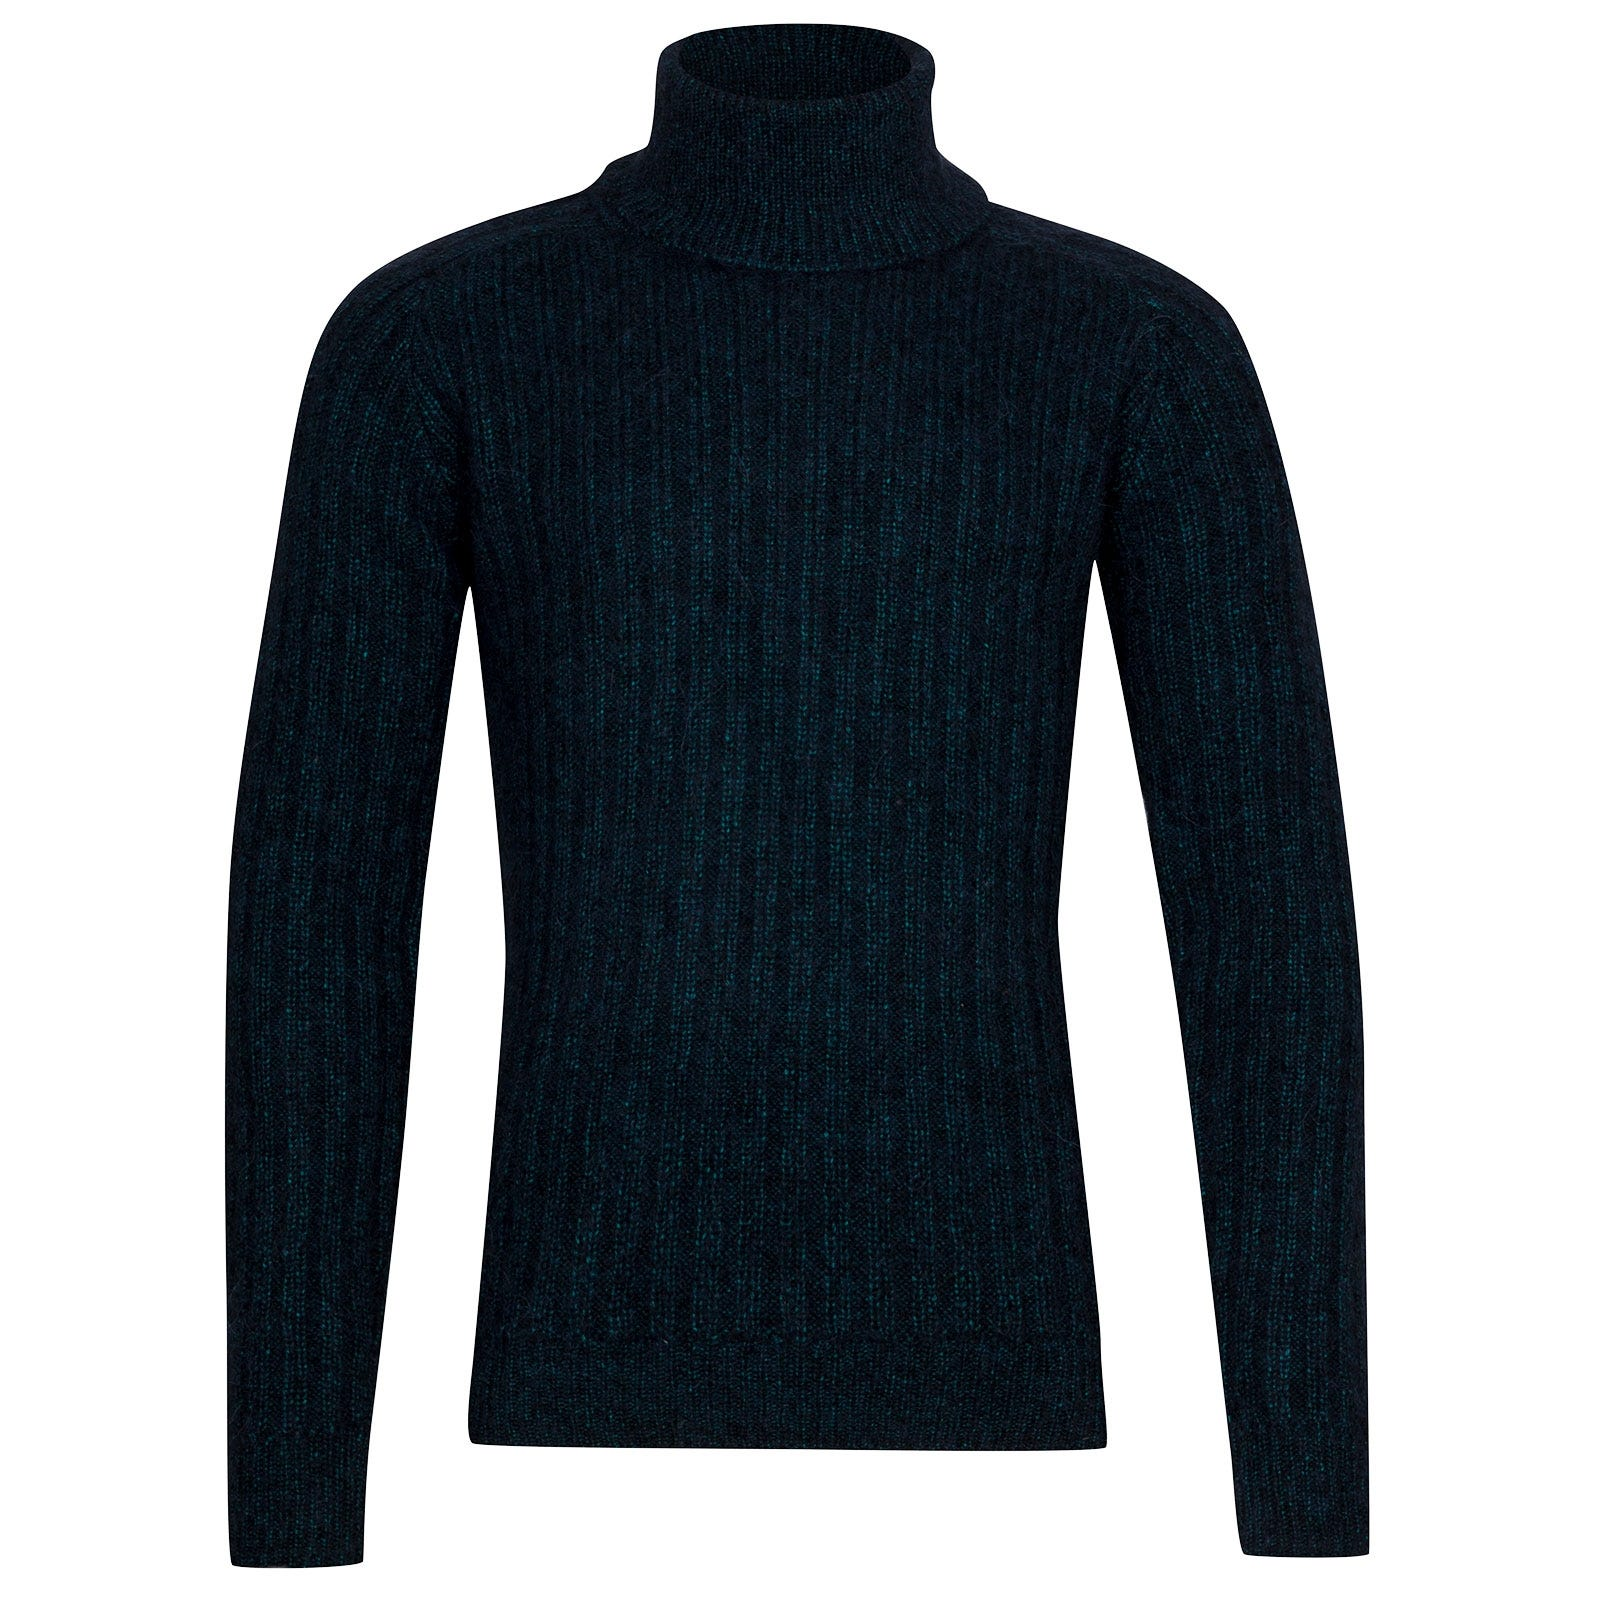 John Smedley Degree Viscose Blend Pullover In Boron Green-L